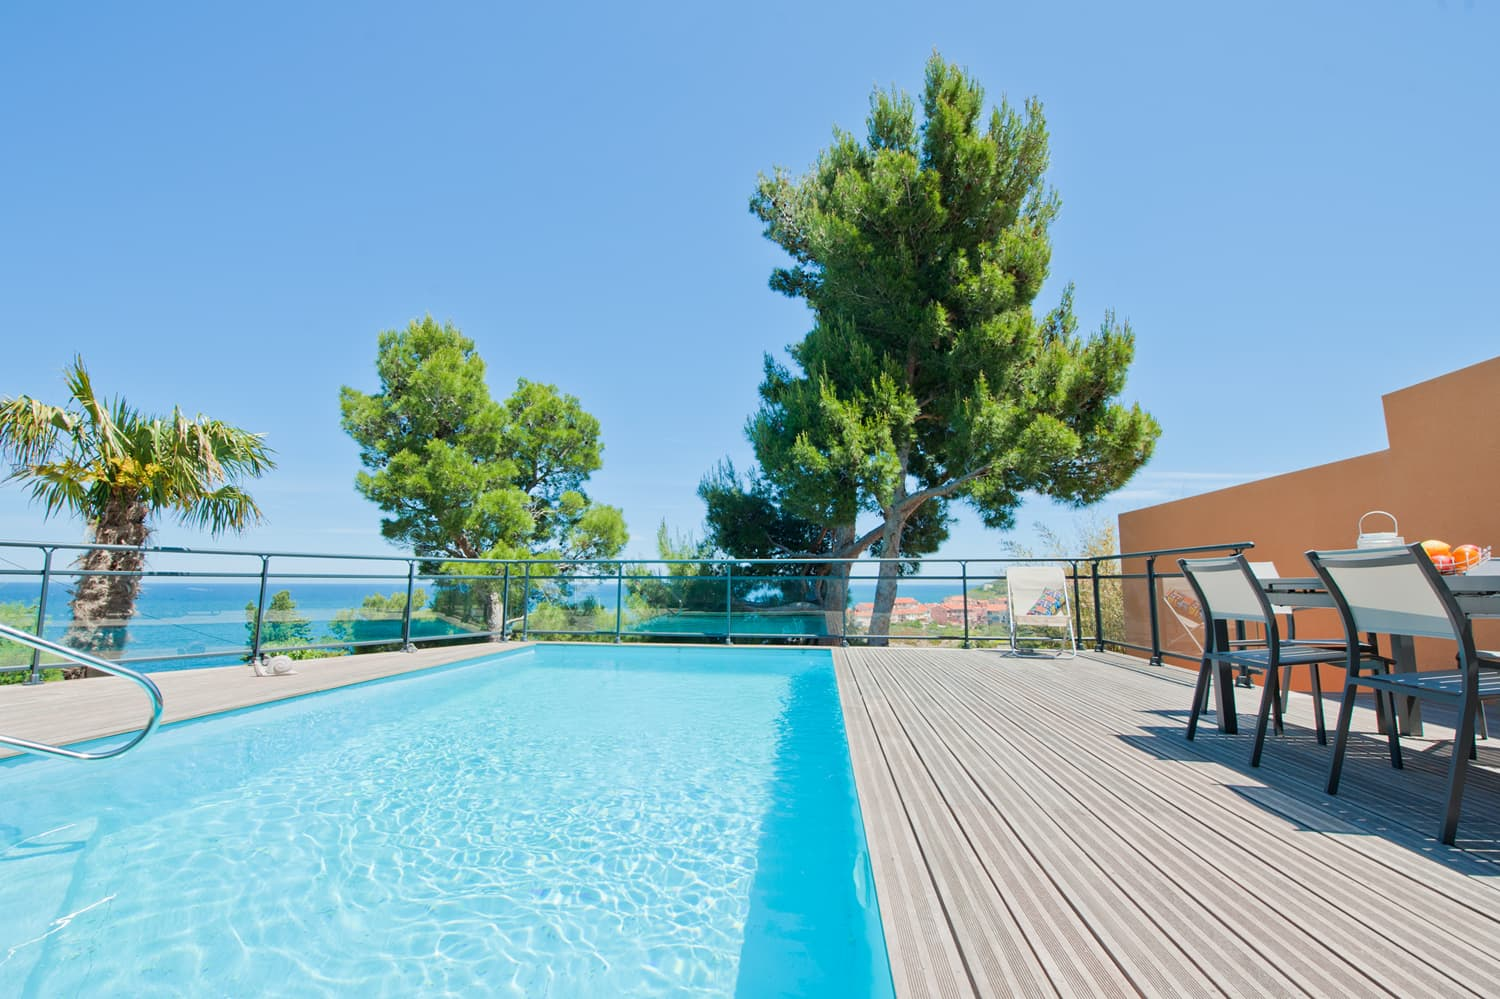 Private pool with Mediterranean Sea views in Collioure